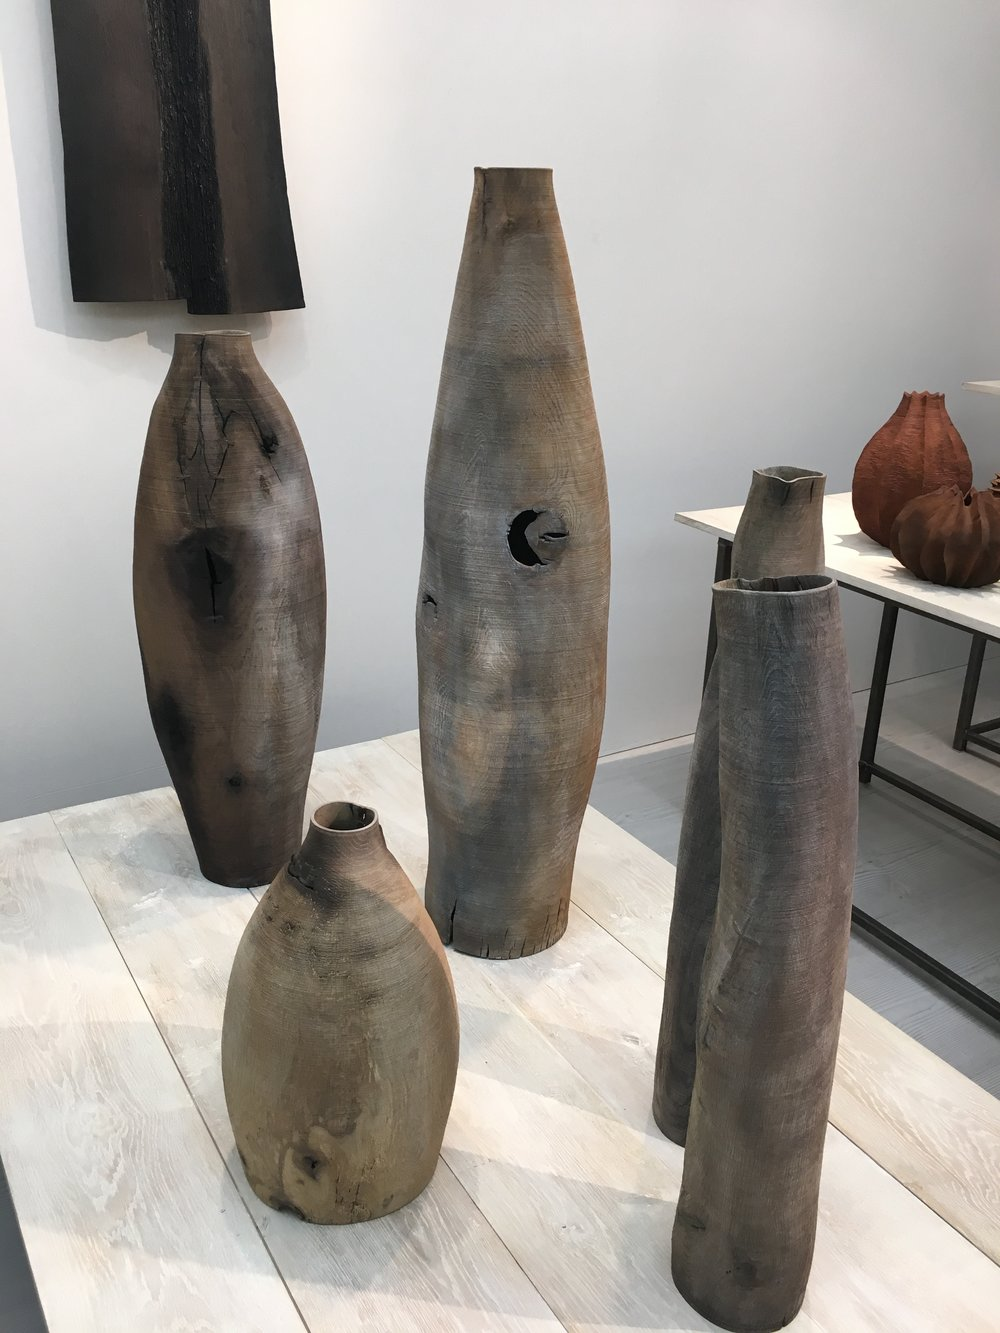 Wooden vessels at Sarah Myerscough Gallery